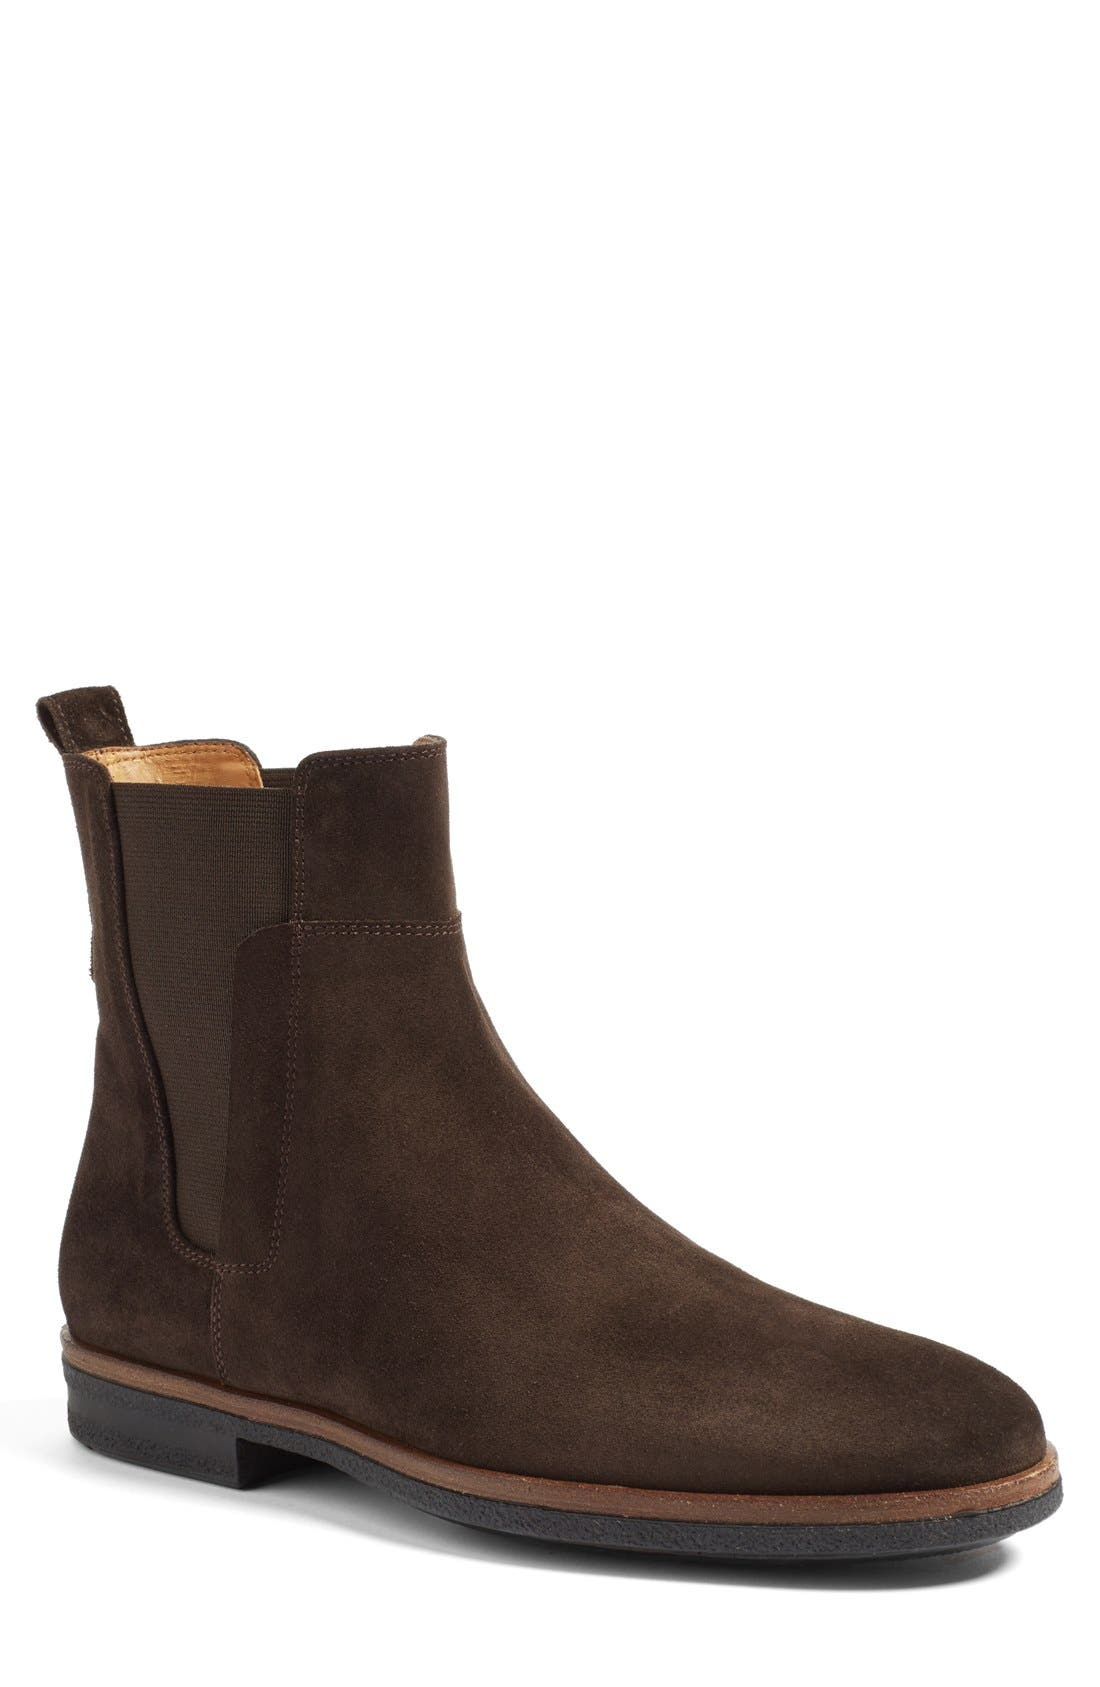 'Harvey' Chelsea Boot, Main, color, 200